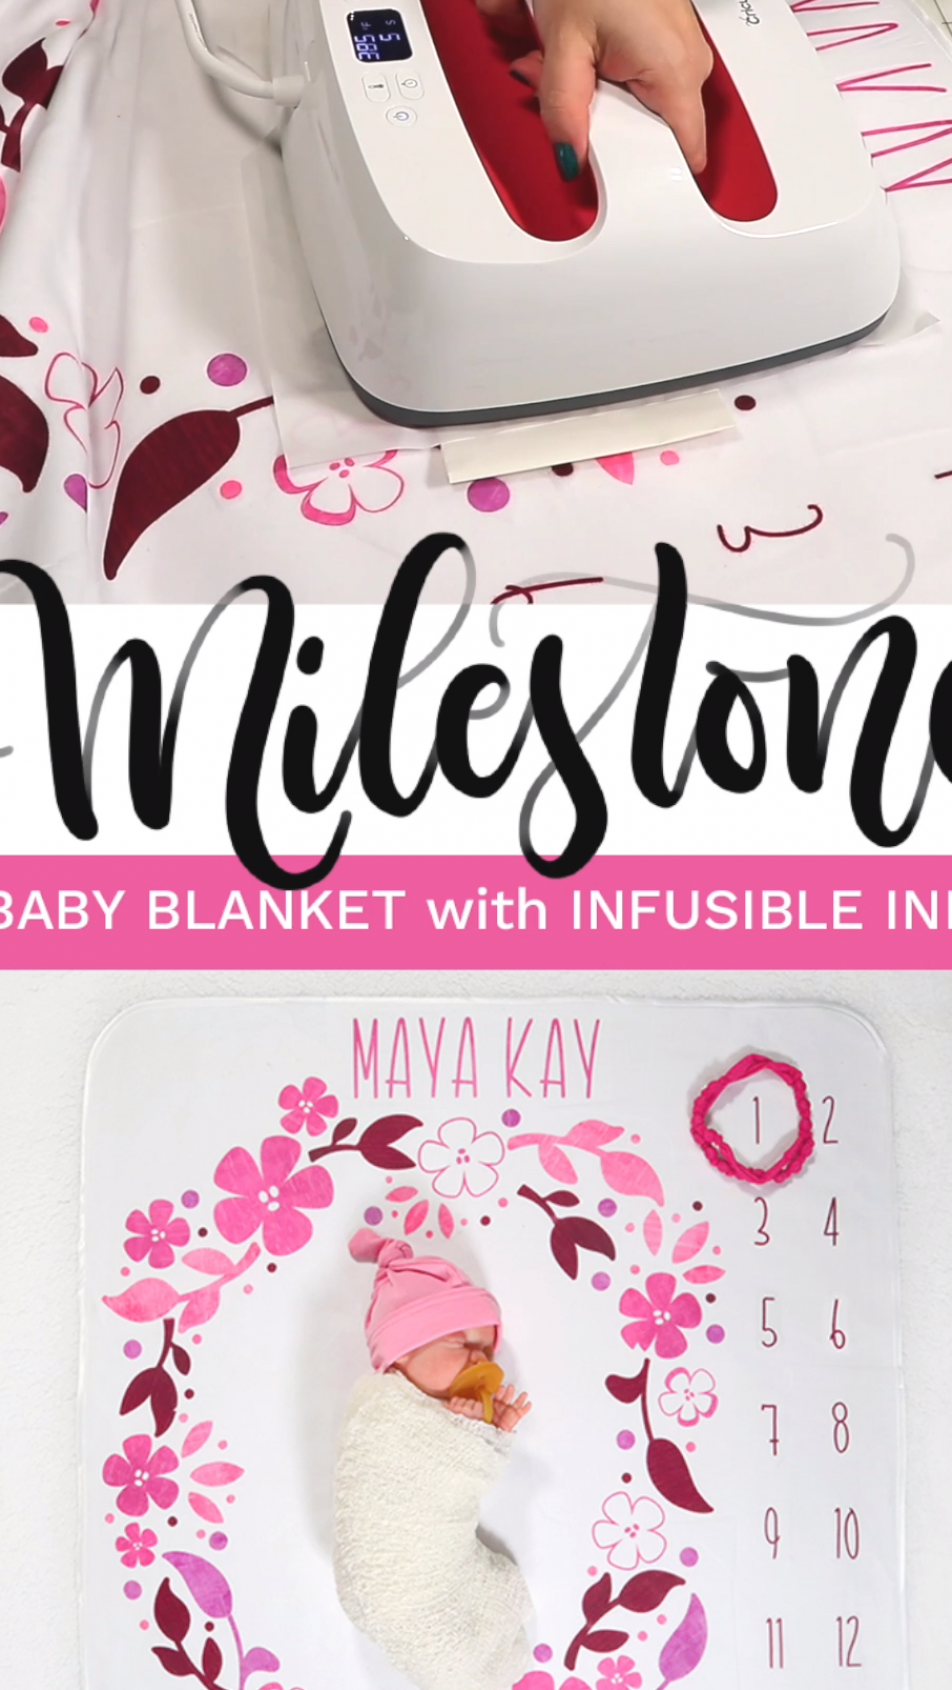 Learn how to make an adorable baby girl DIY milestone blanket using Cricut   s Infusible ink     Track the growth of your baby girl in her first year of life with this beautiful and easy to make swaddle  #cricutmade #infusibleink #ad  officialcricut #milestoneblanket #cricutcreated